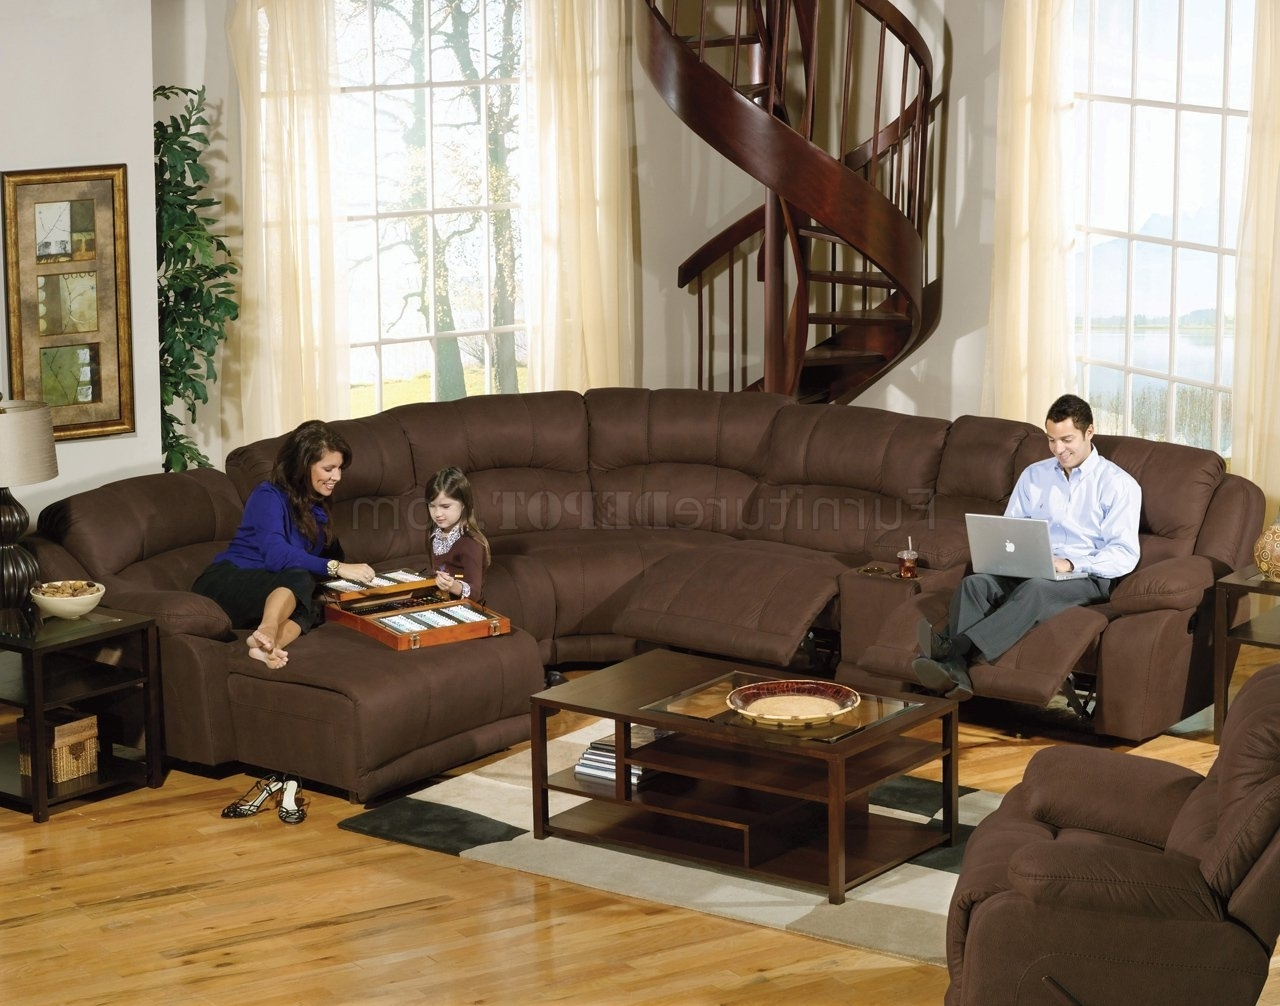 Furniture : Dark Green Leather Sofa And Loveseat Leather Sofa Throughout Popular Sectional Sofas At Bad Boy (View 13 of 15)